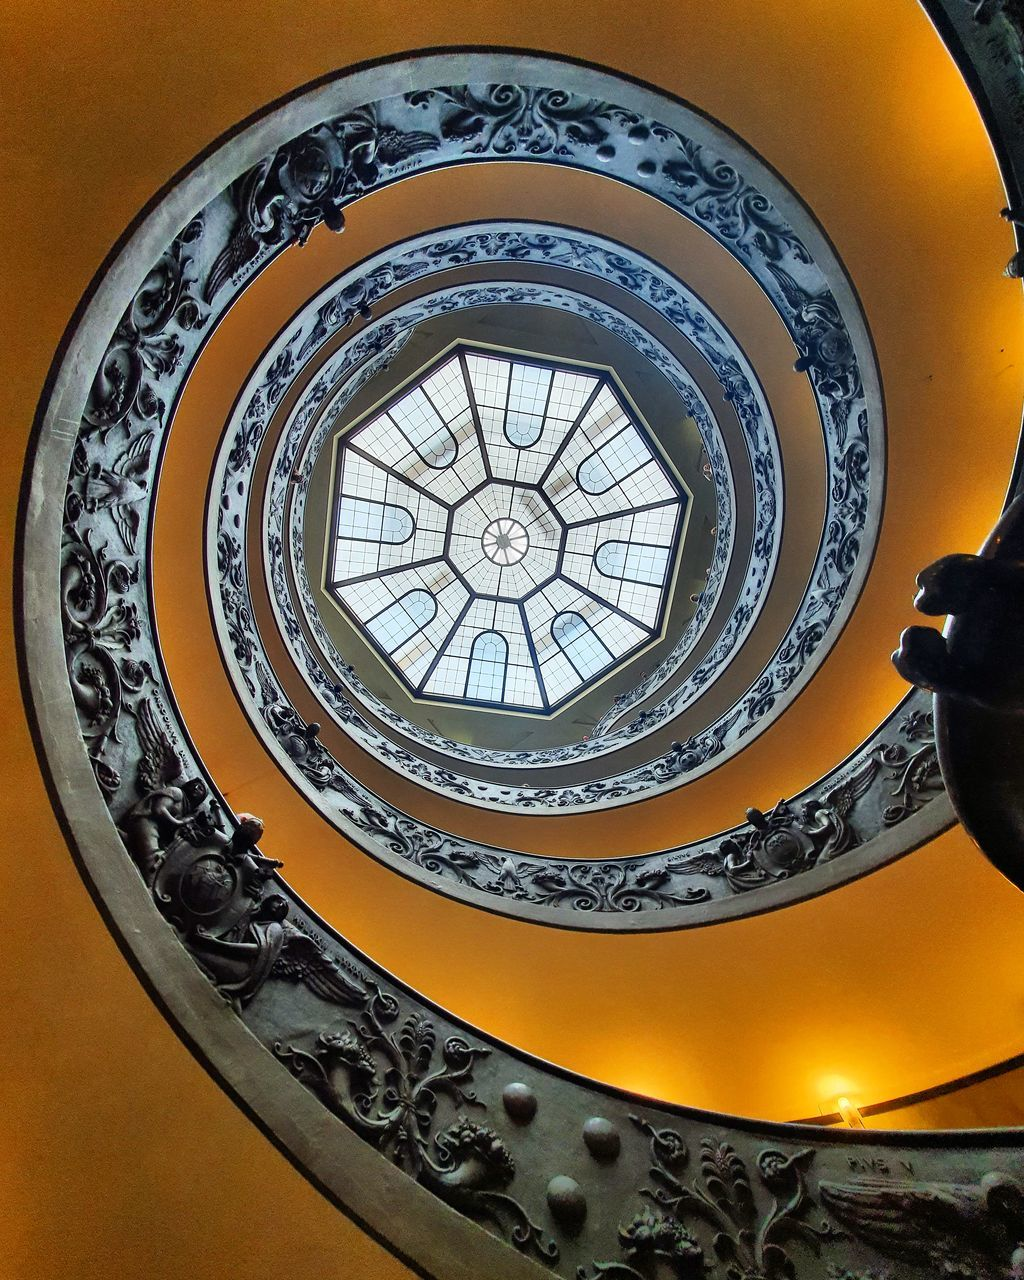 LOW ANGLE VIEW OF SPIRAL STAIRCASE IN CEILING